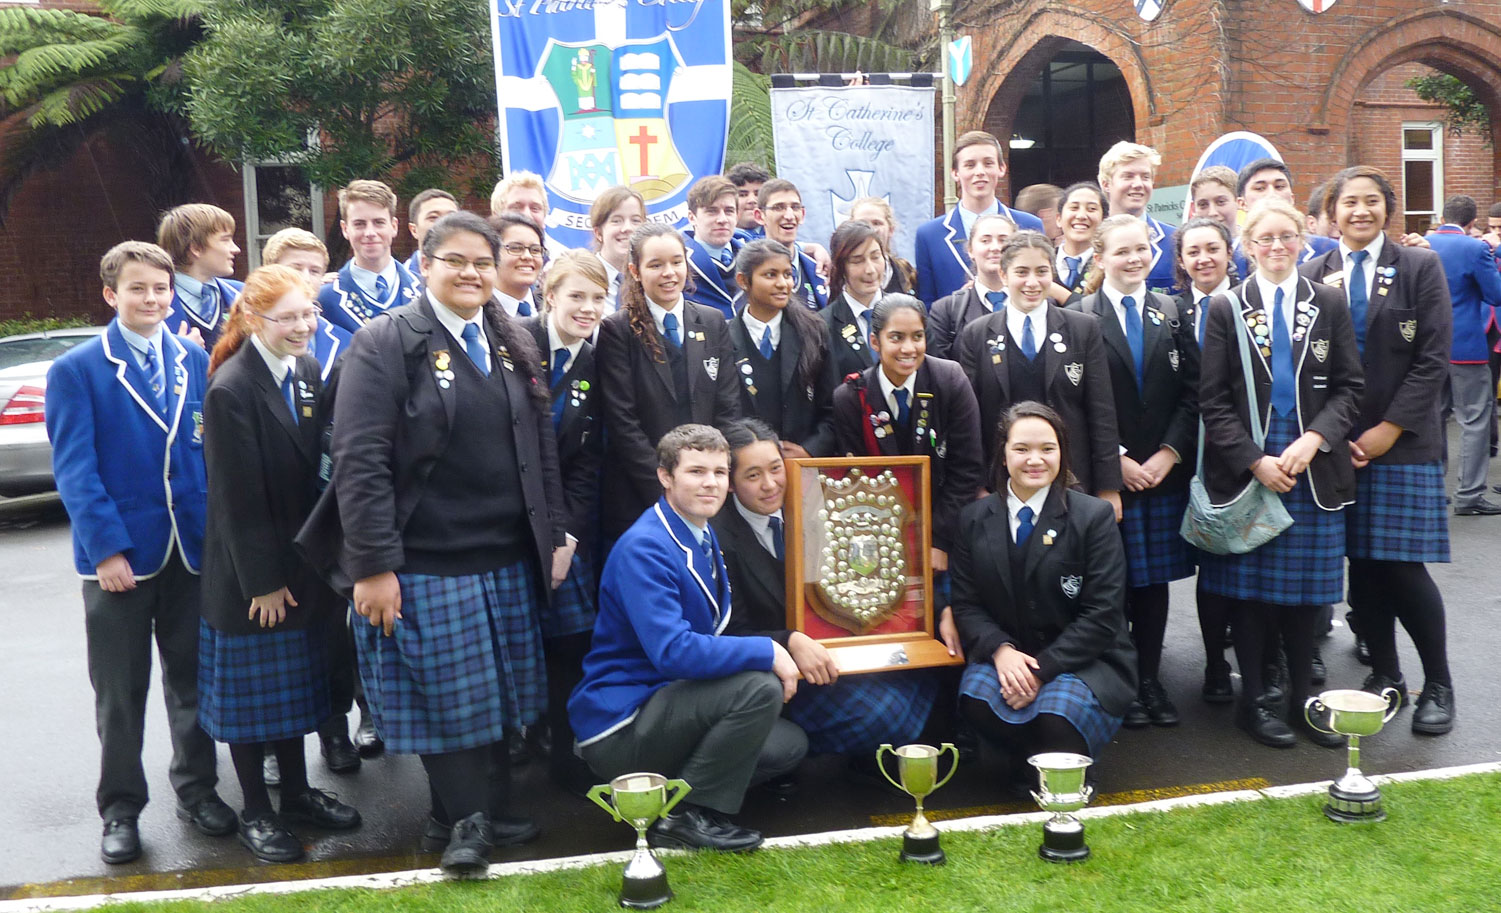 Students from St Patrick's and St Catherine's colleges Kilbirnie jubilant in winning the O'Shea Shield in a hard-fought competition with all colleges in Wellington and Palmerston North dioceses.